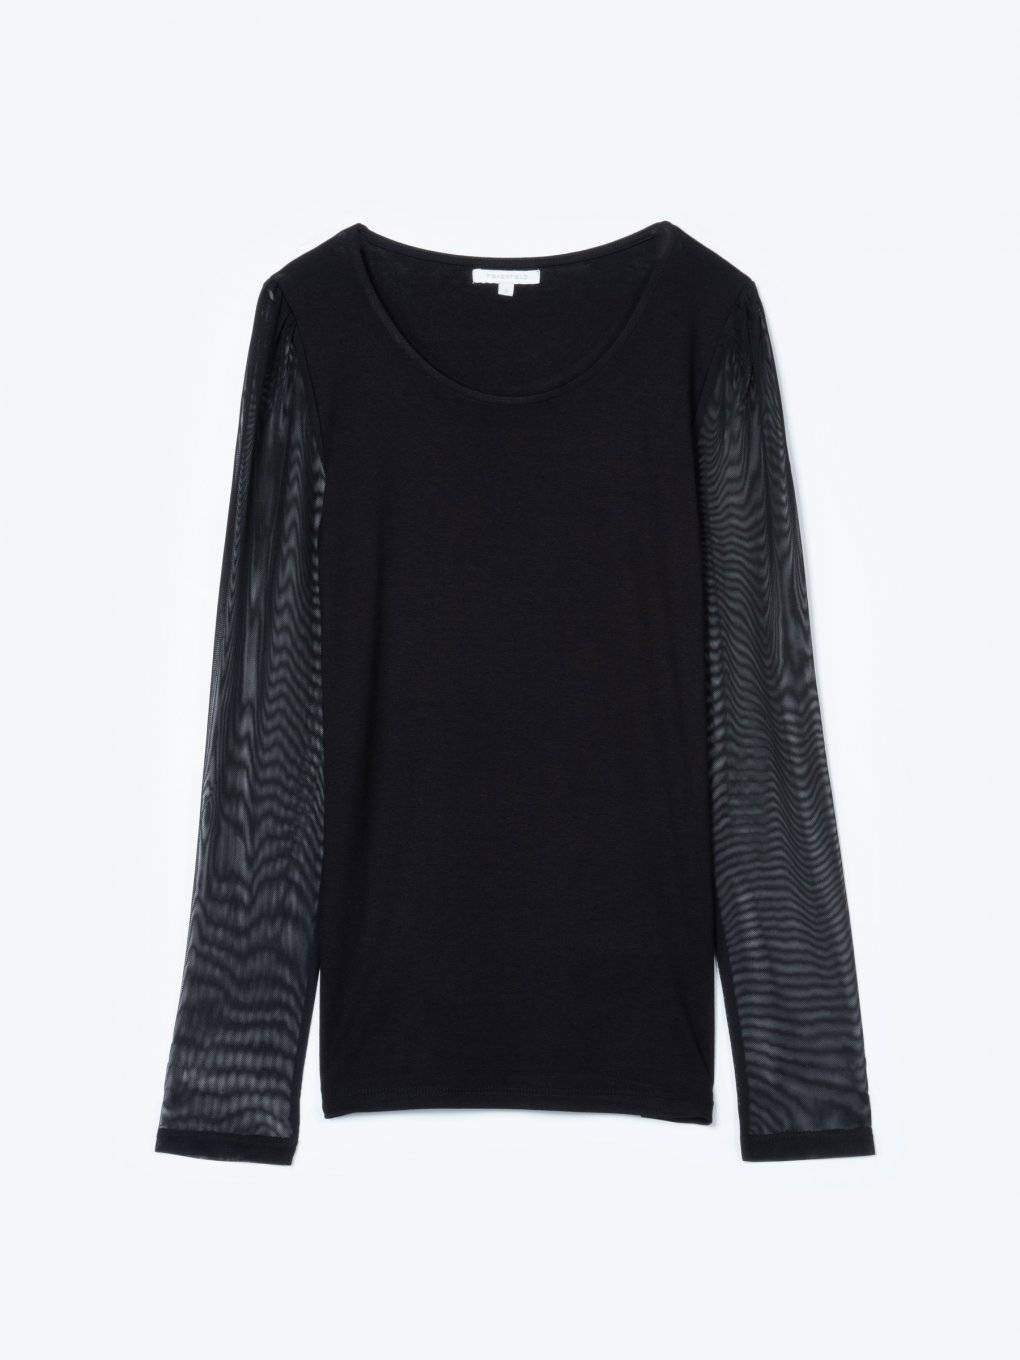 T-shirt with mesh sleeves